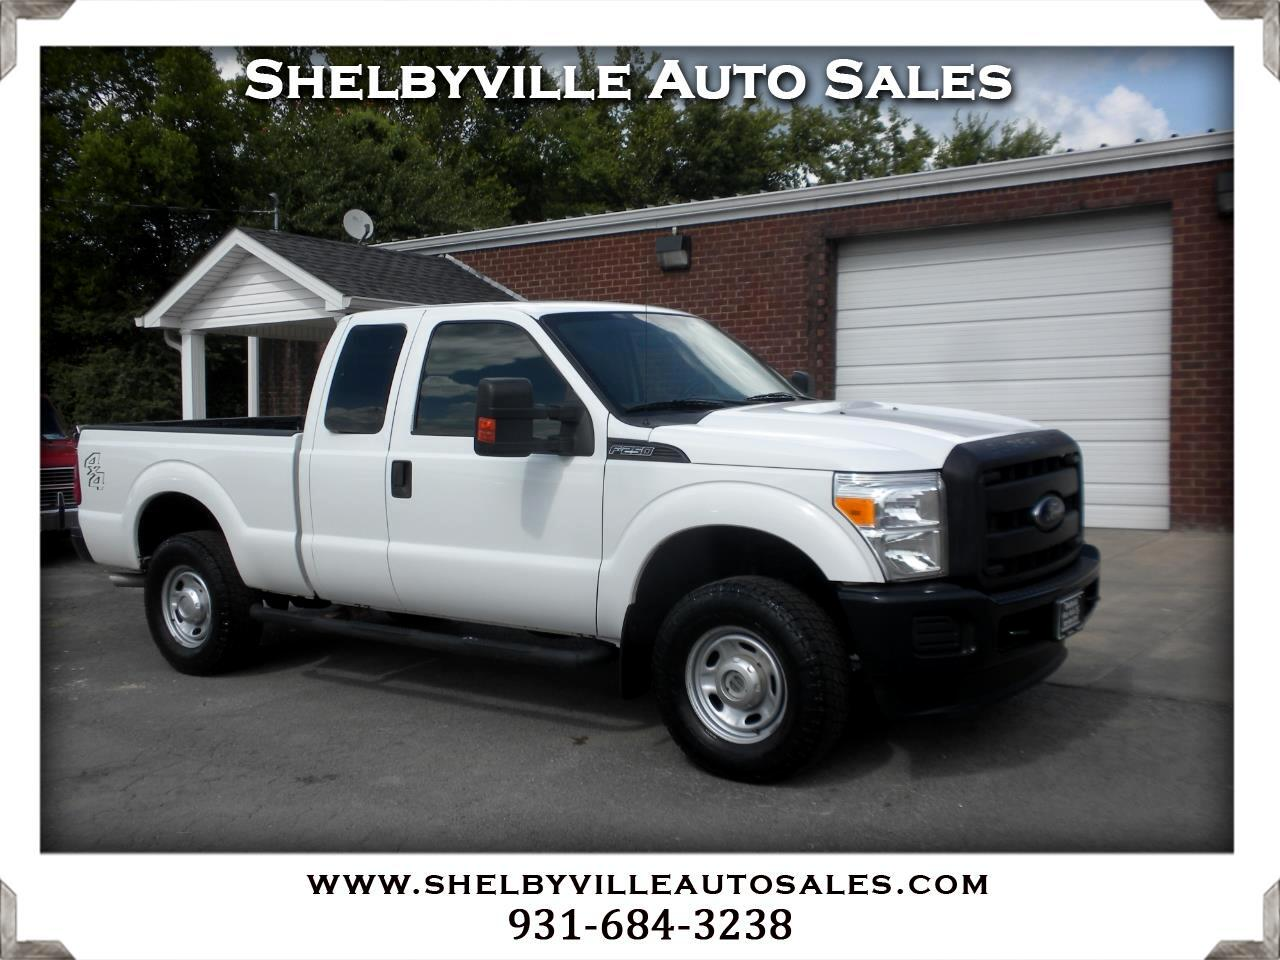 2015 Ford Super Duty F-250 SRW 4X4 SuperCab XL